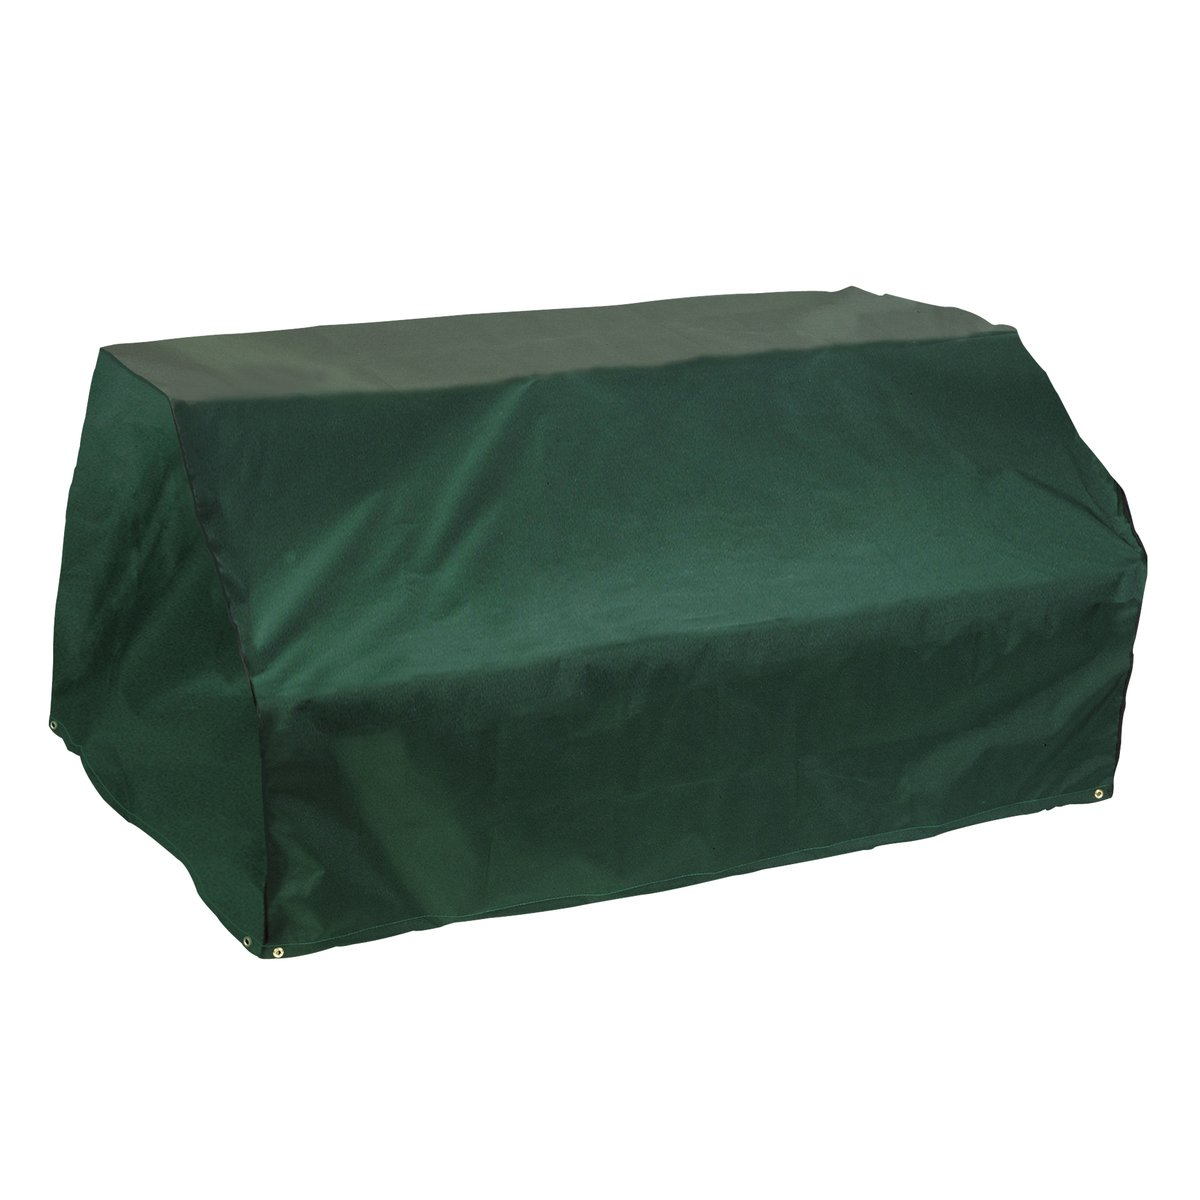 Bosmere C625 6 Seat Picnic Table Cover Bosmere Products Ltd